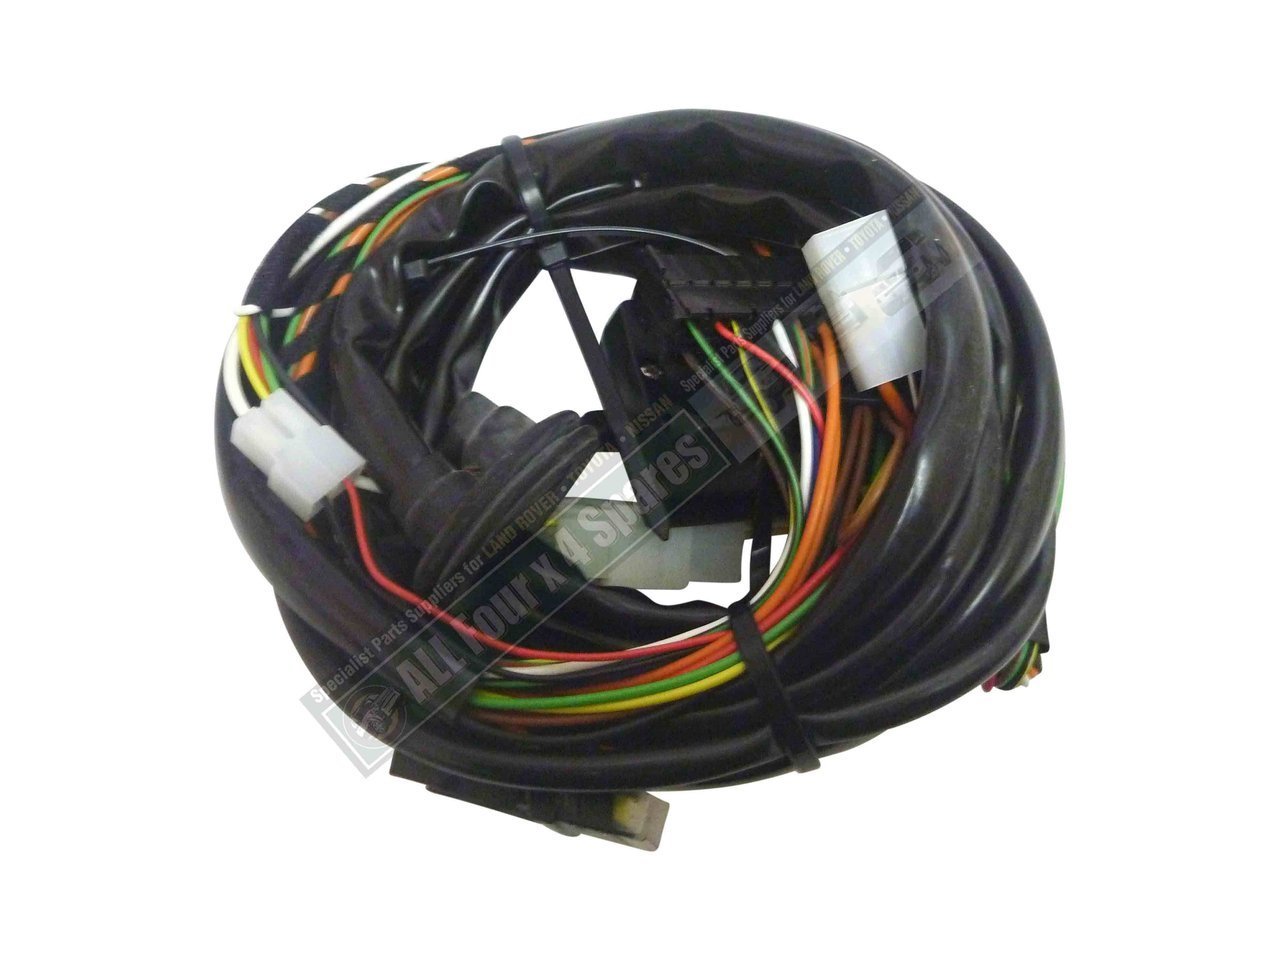 MIL TO 216 B4M__3 milford towbar wiring harness toyota landcruiser 200 2009 on land cruiser wiring harness at aneh.co